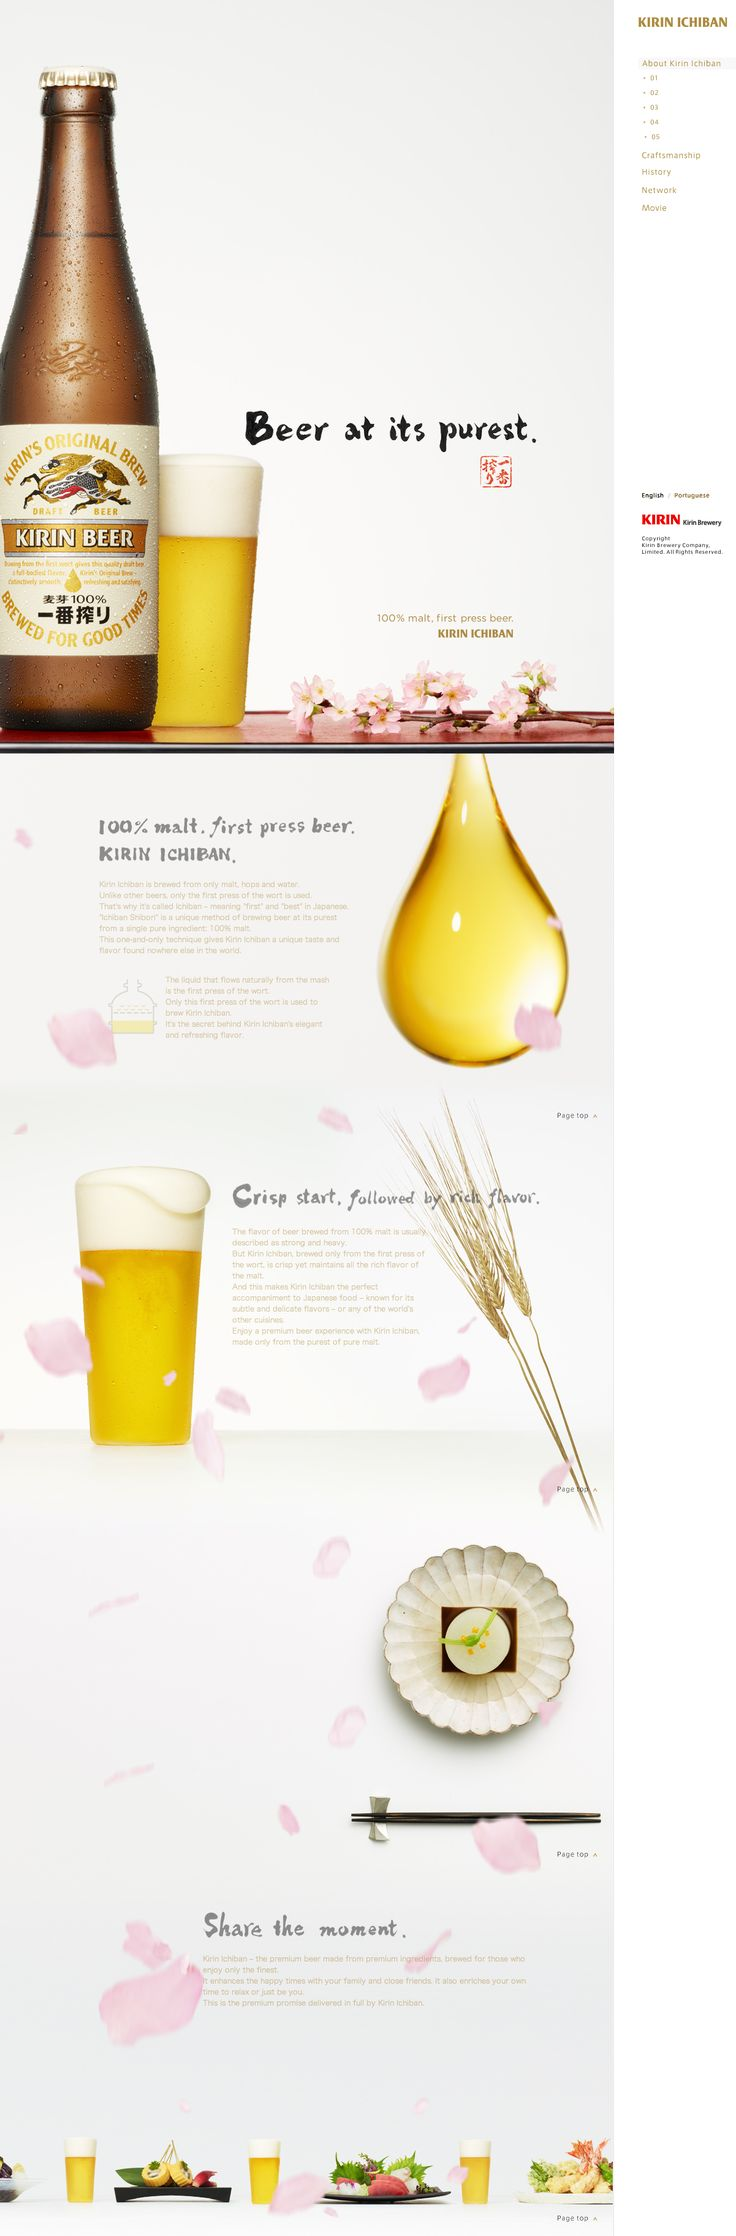 KIRIN ICHIBAN's minimalist design is super effective - are you thirsty yet? #webdesign #minimalist